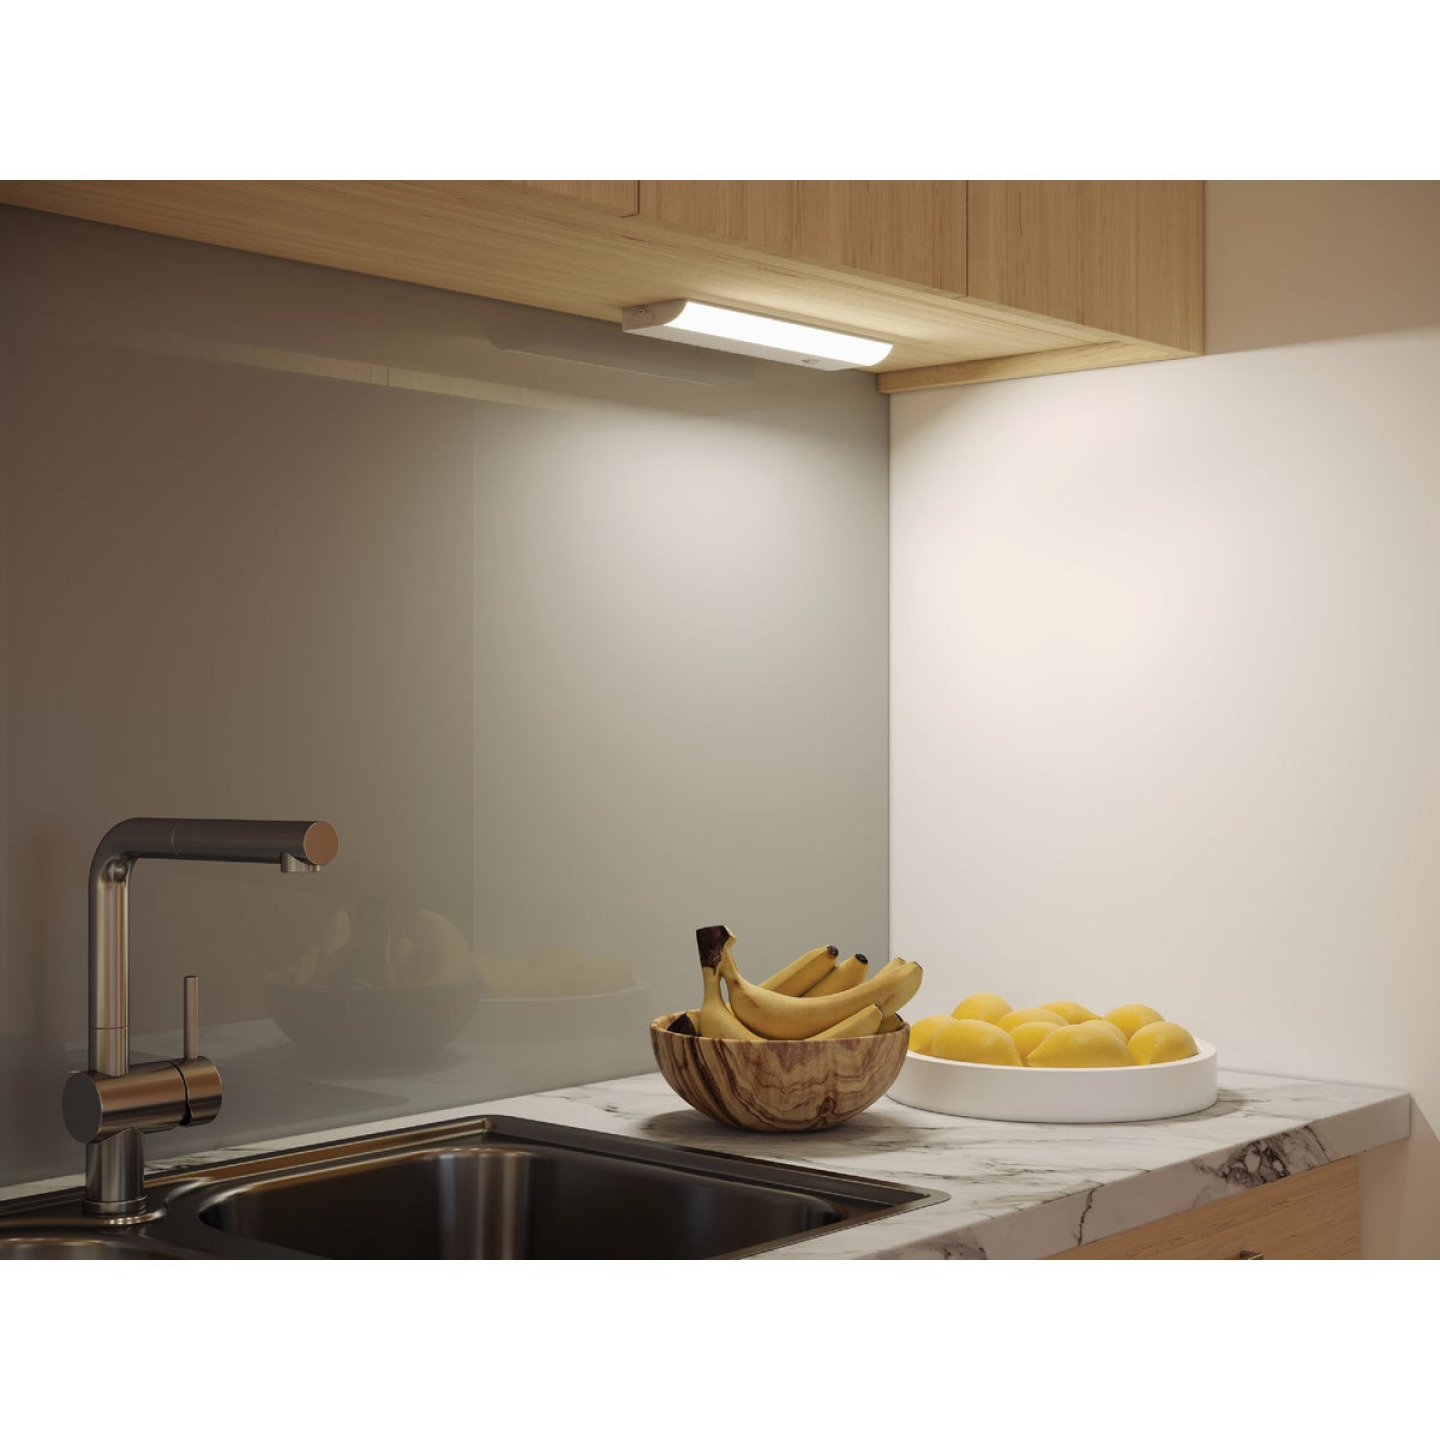 Good Earth Lighting  12 In. Direct Wire White LED Under Cabinet Light Bar Image 2